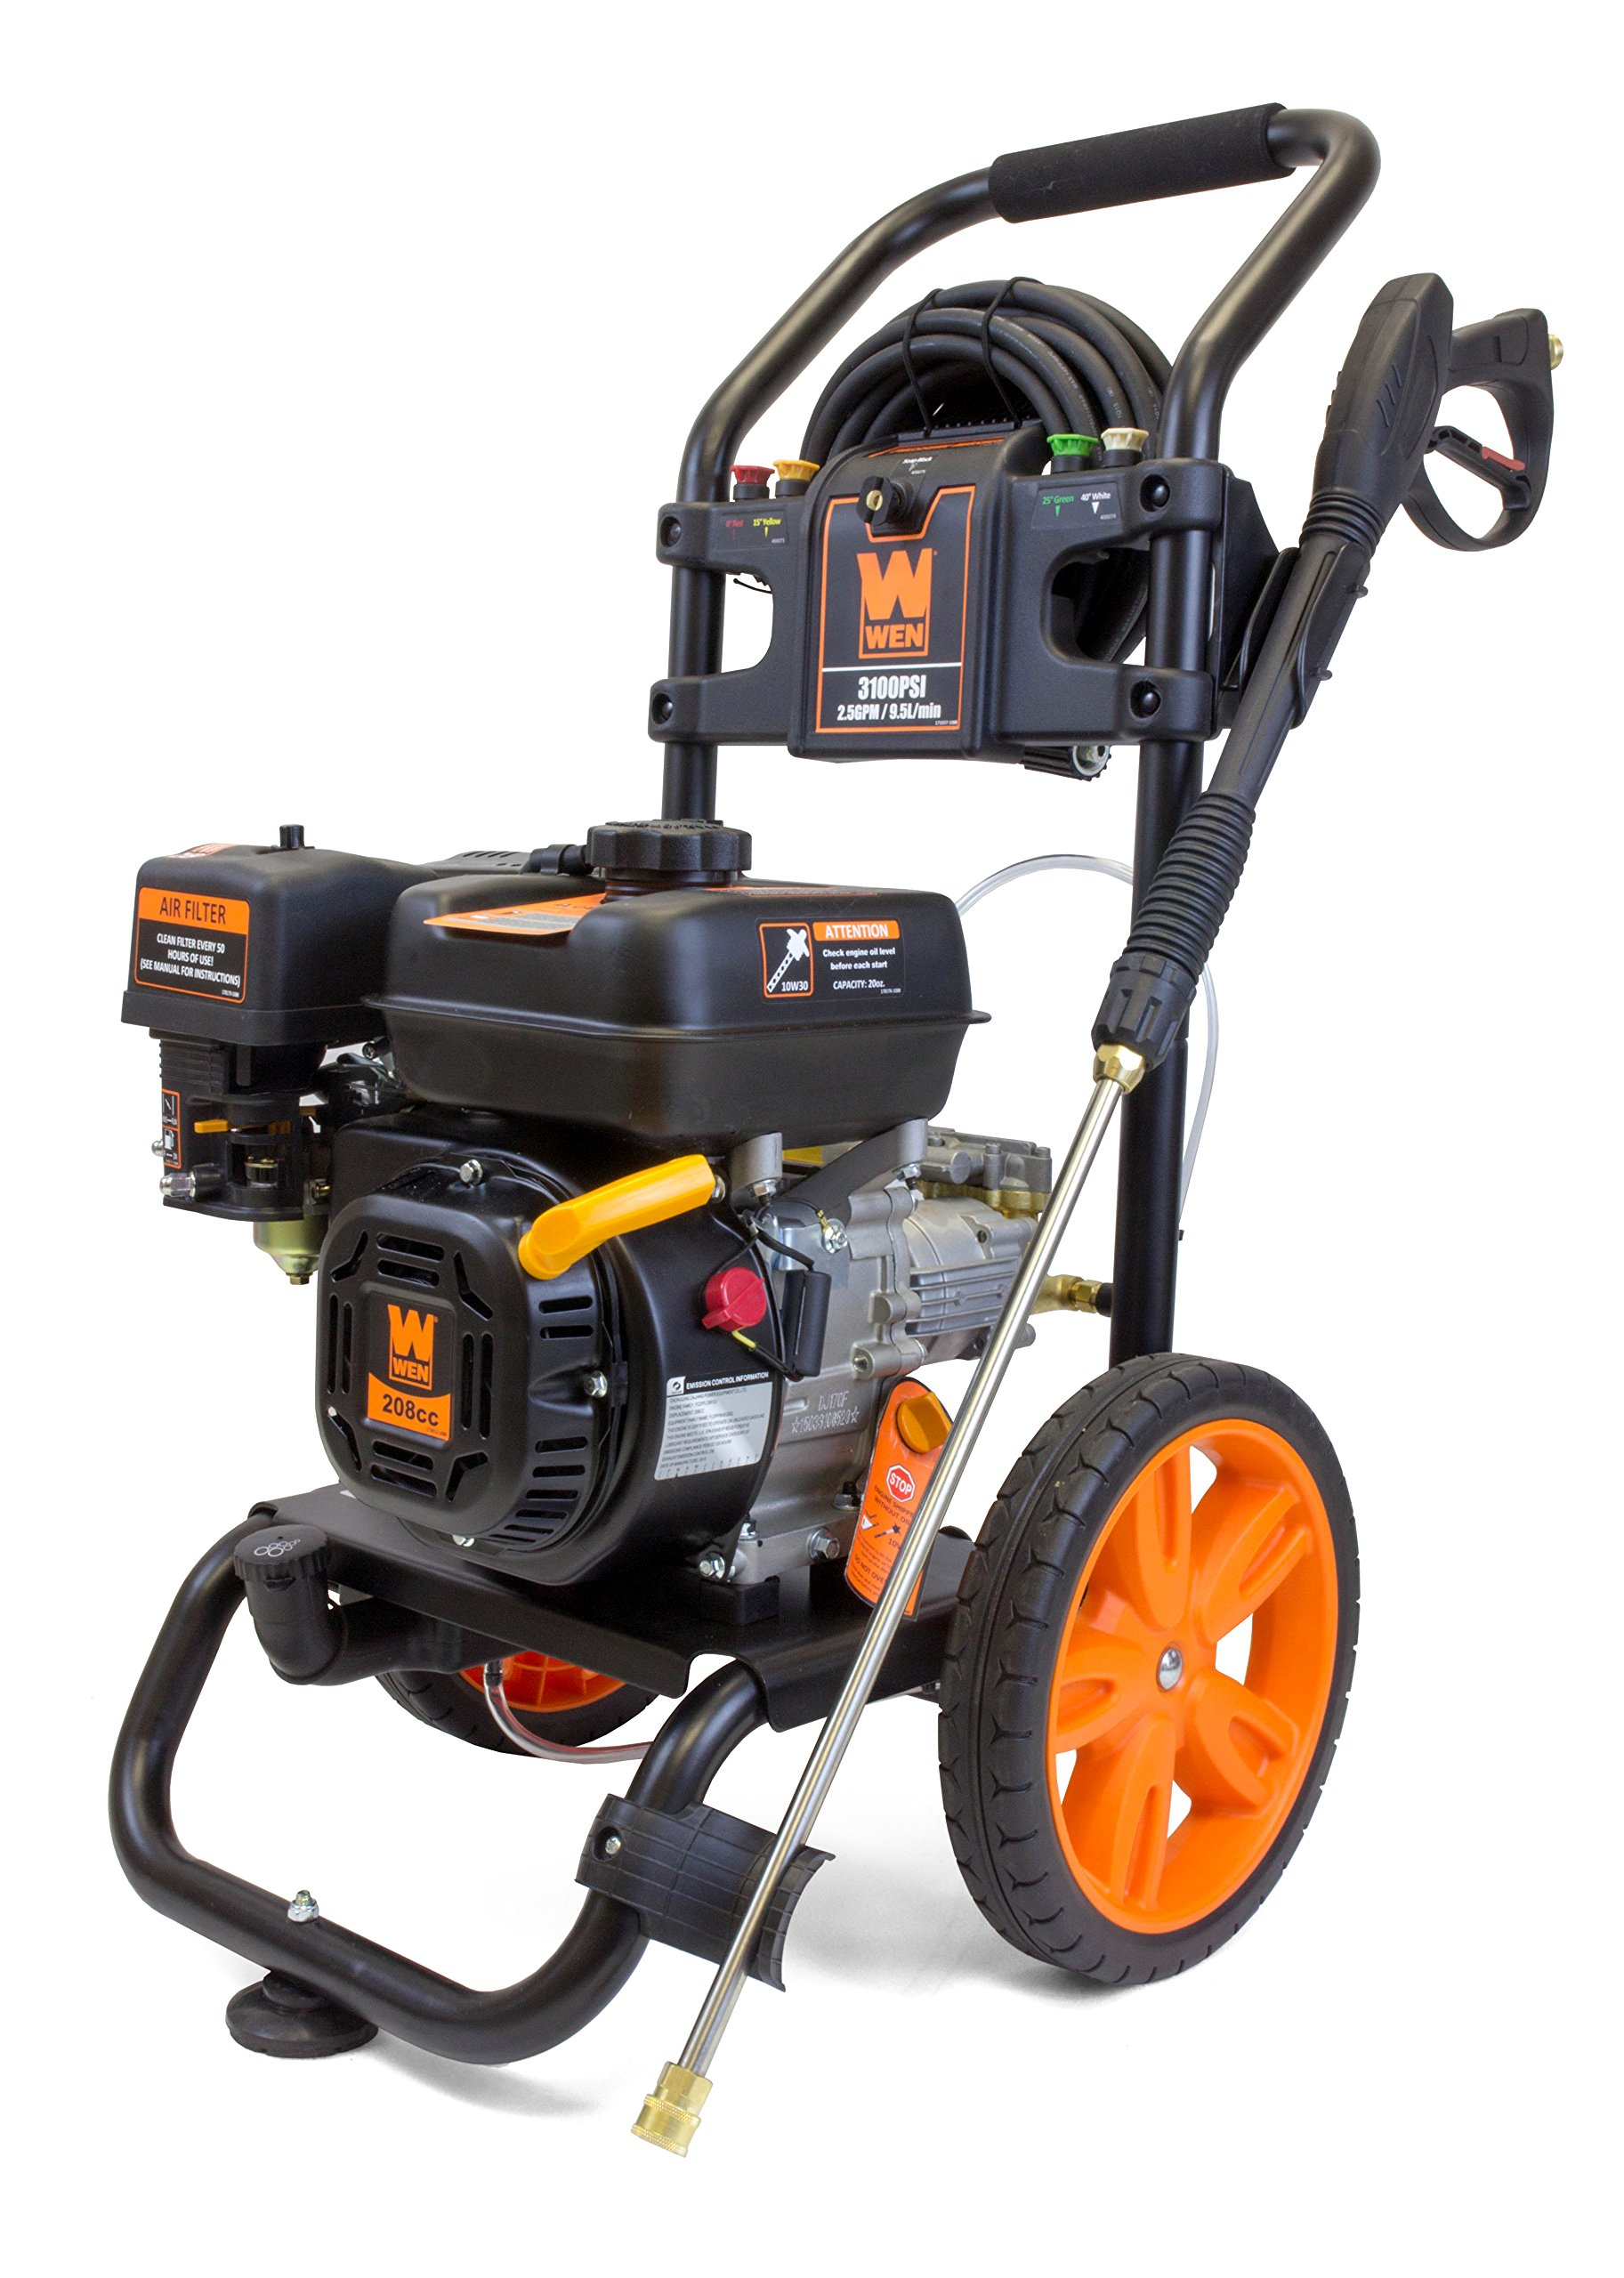 WEN PW31 3100 PSI Gas Pressure Washer, 208 cc product image